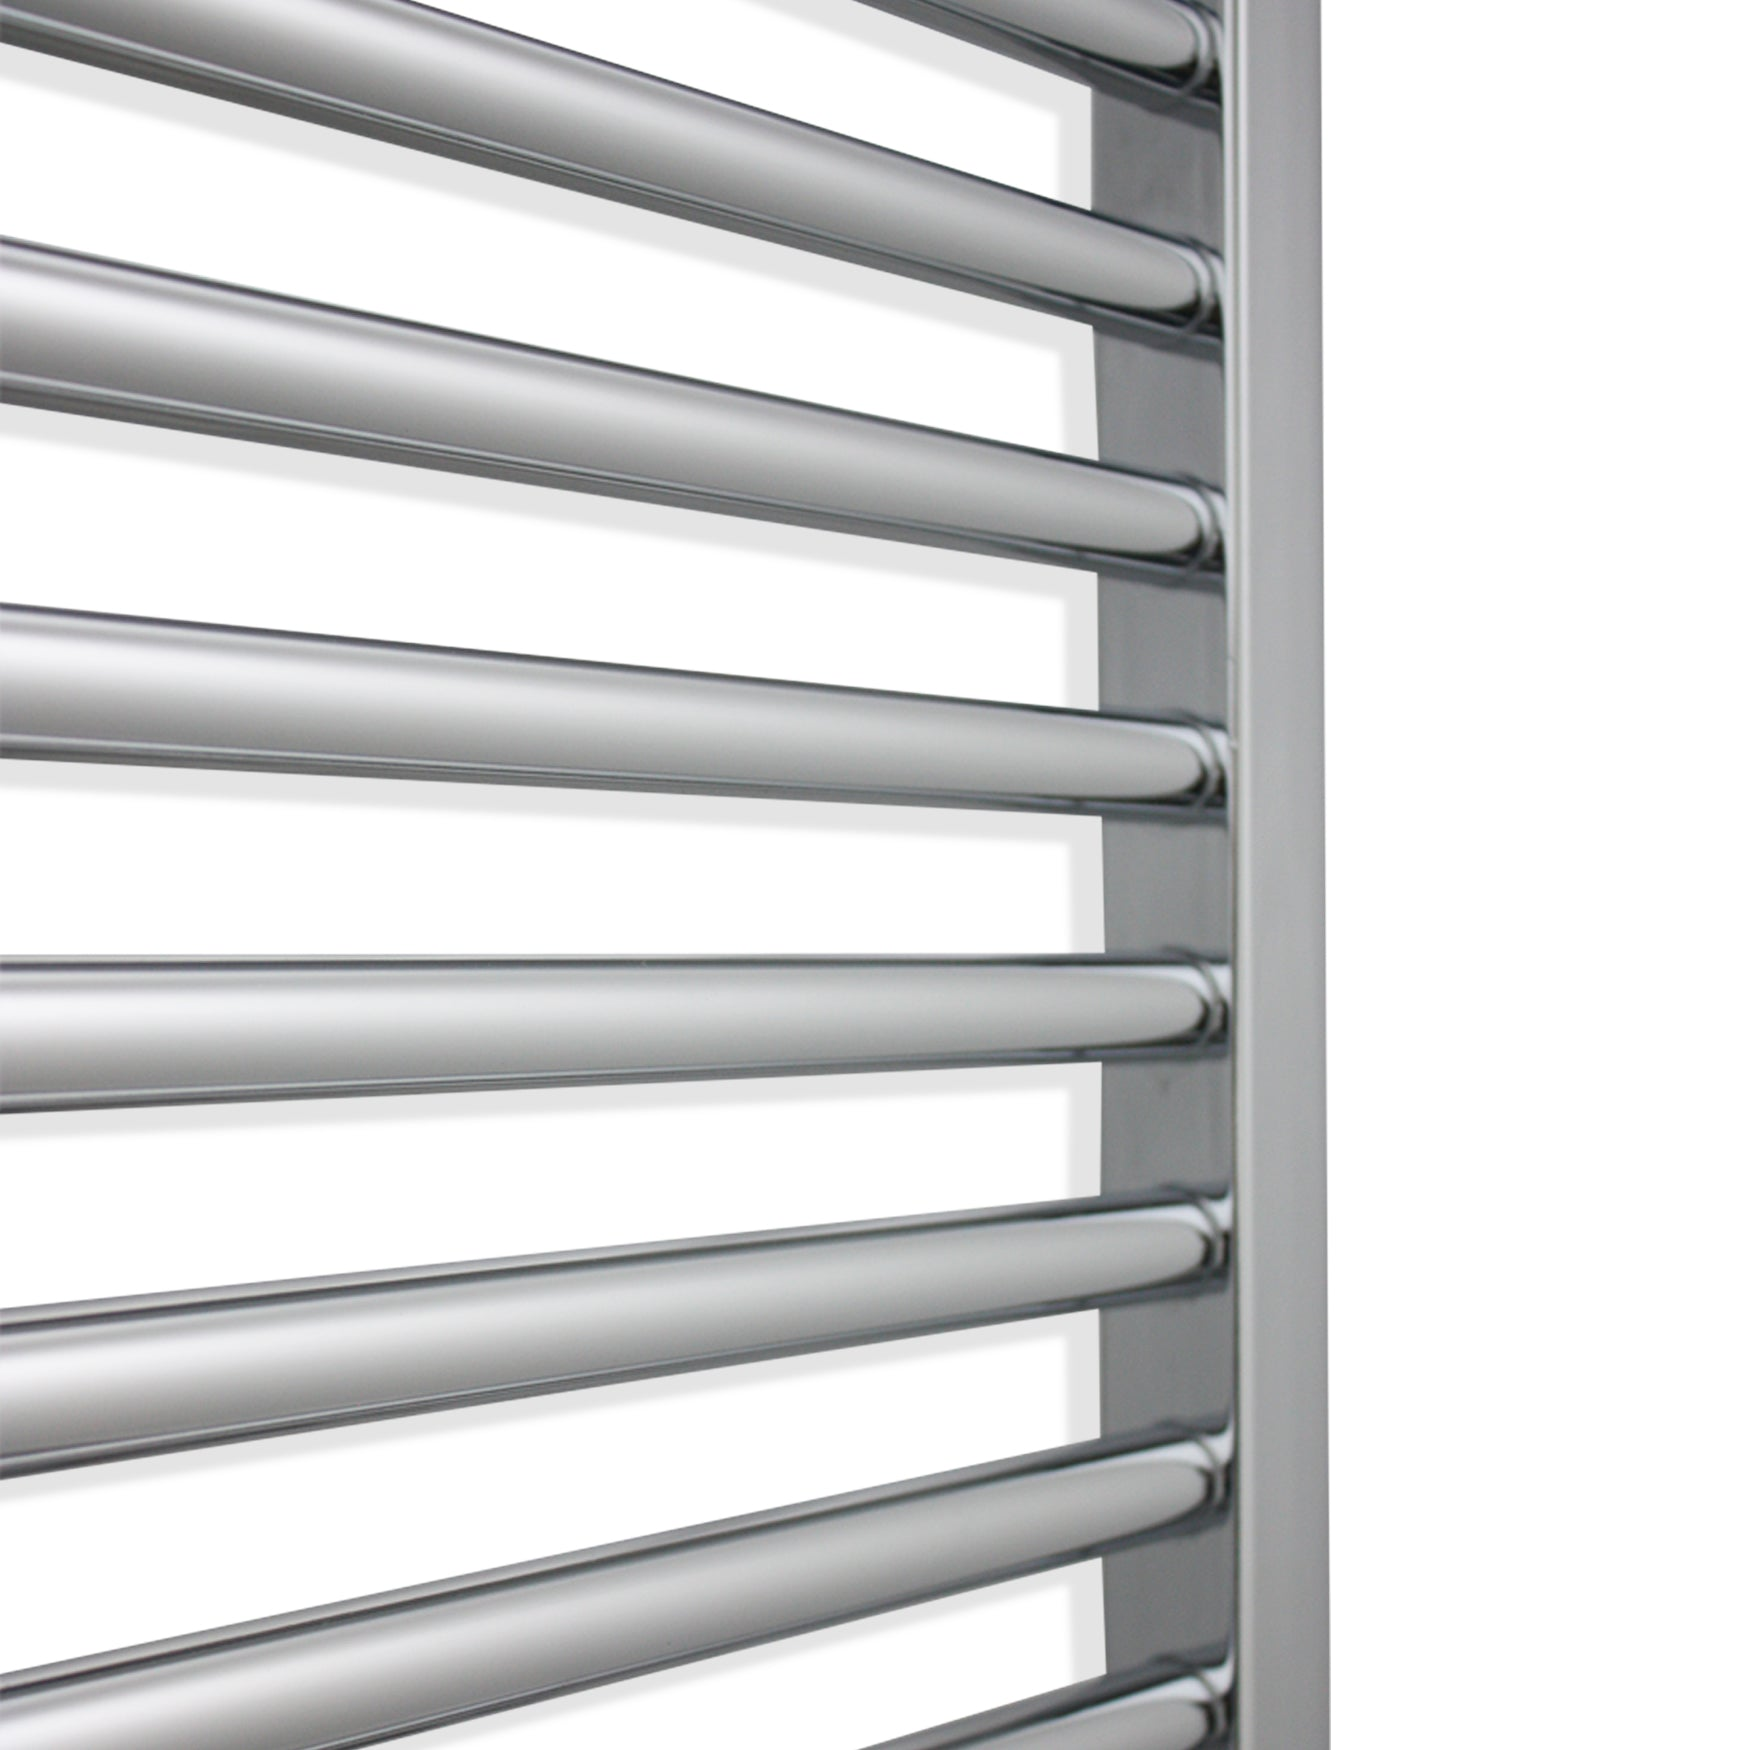 700mm Wide 400mm High Flat Or Curved Chrome Pre-Filled Electric Heated Towel Rail Radiator HTR